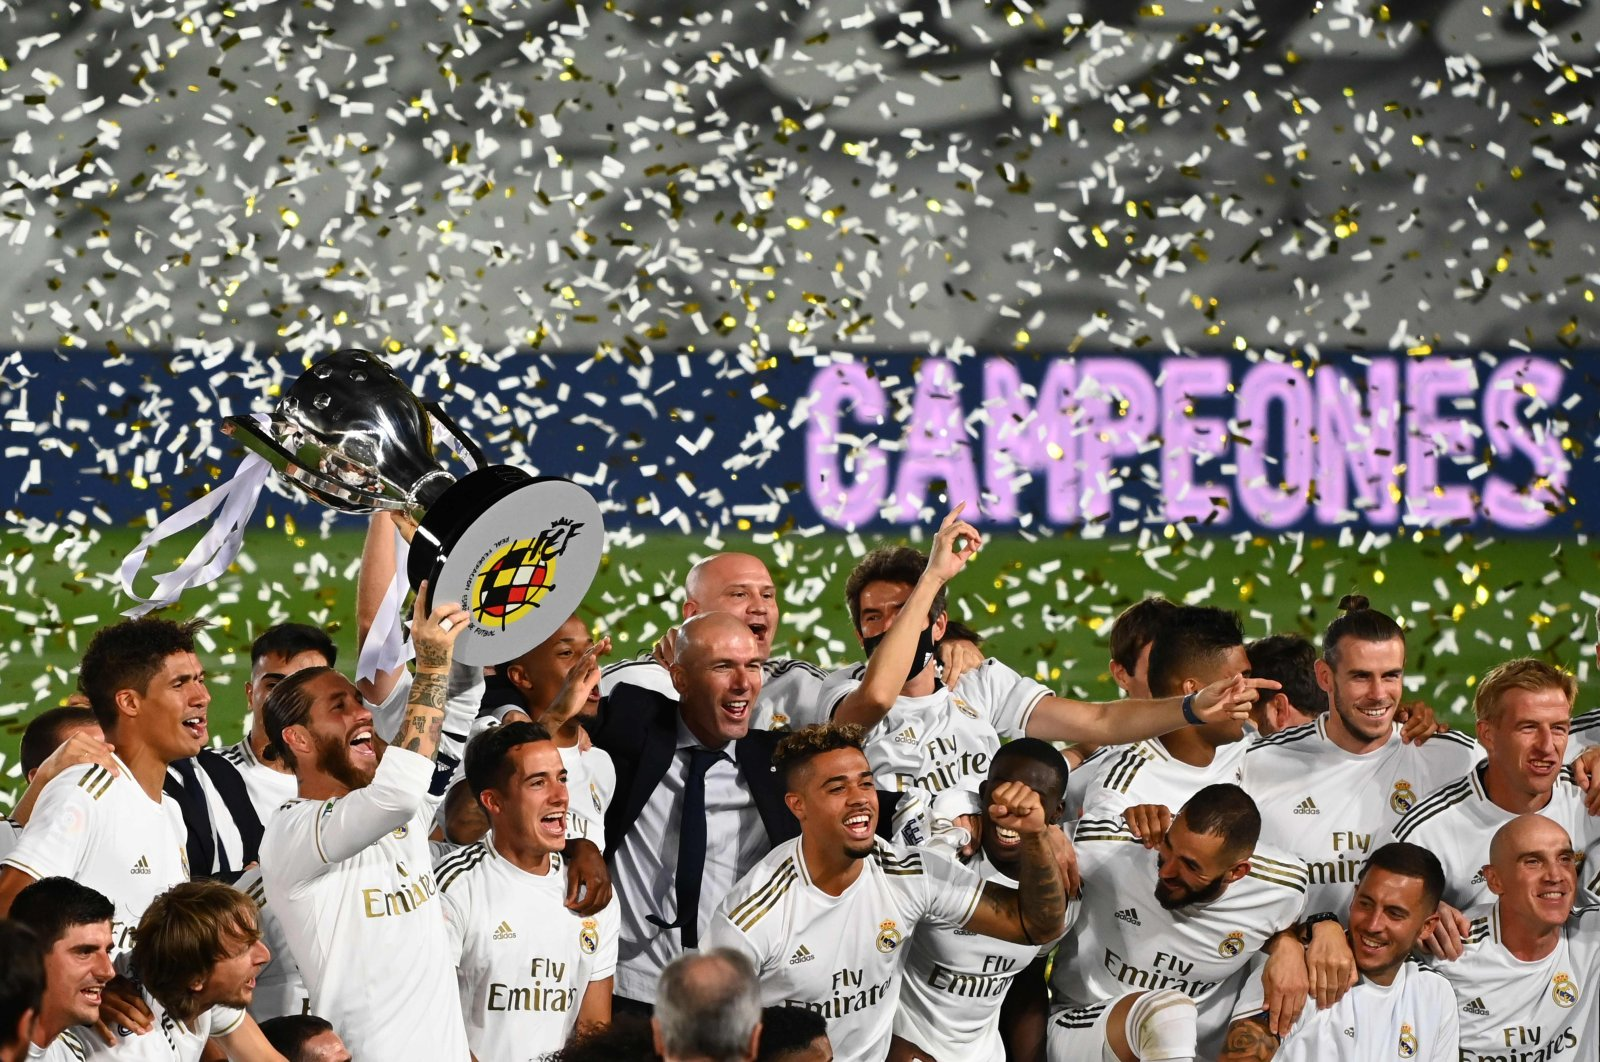 Real Madrid's players celebrate winning the La Liga title, in Madrid, Spain, July 16, 2020. (AFP Photo)